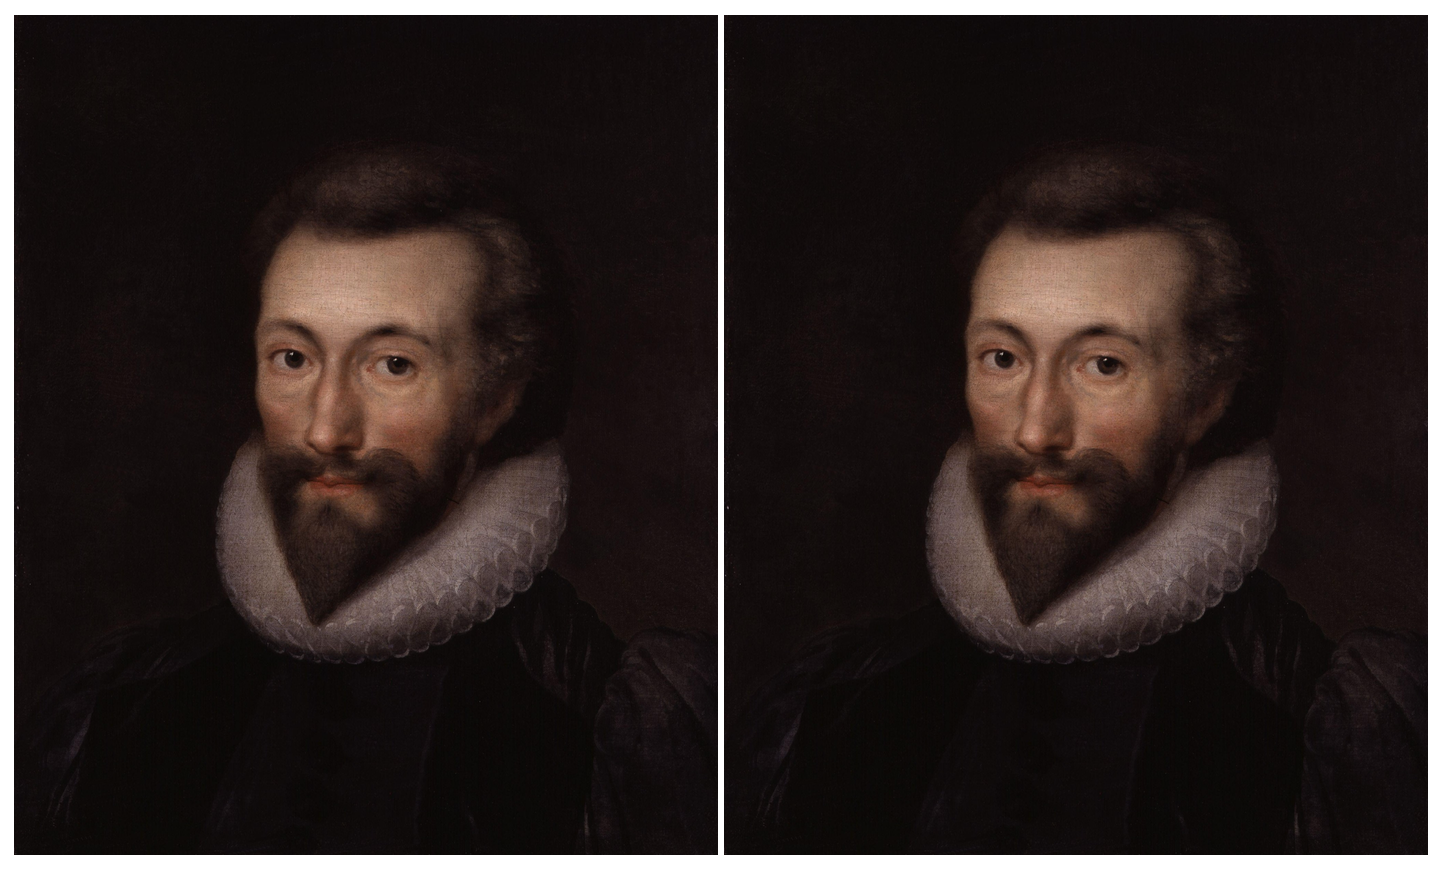 Painting of the poet John Donne.